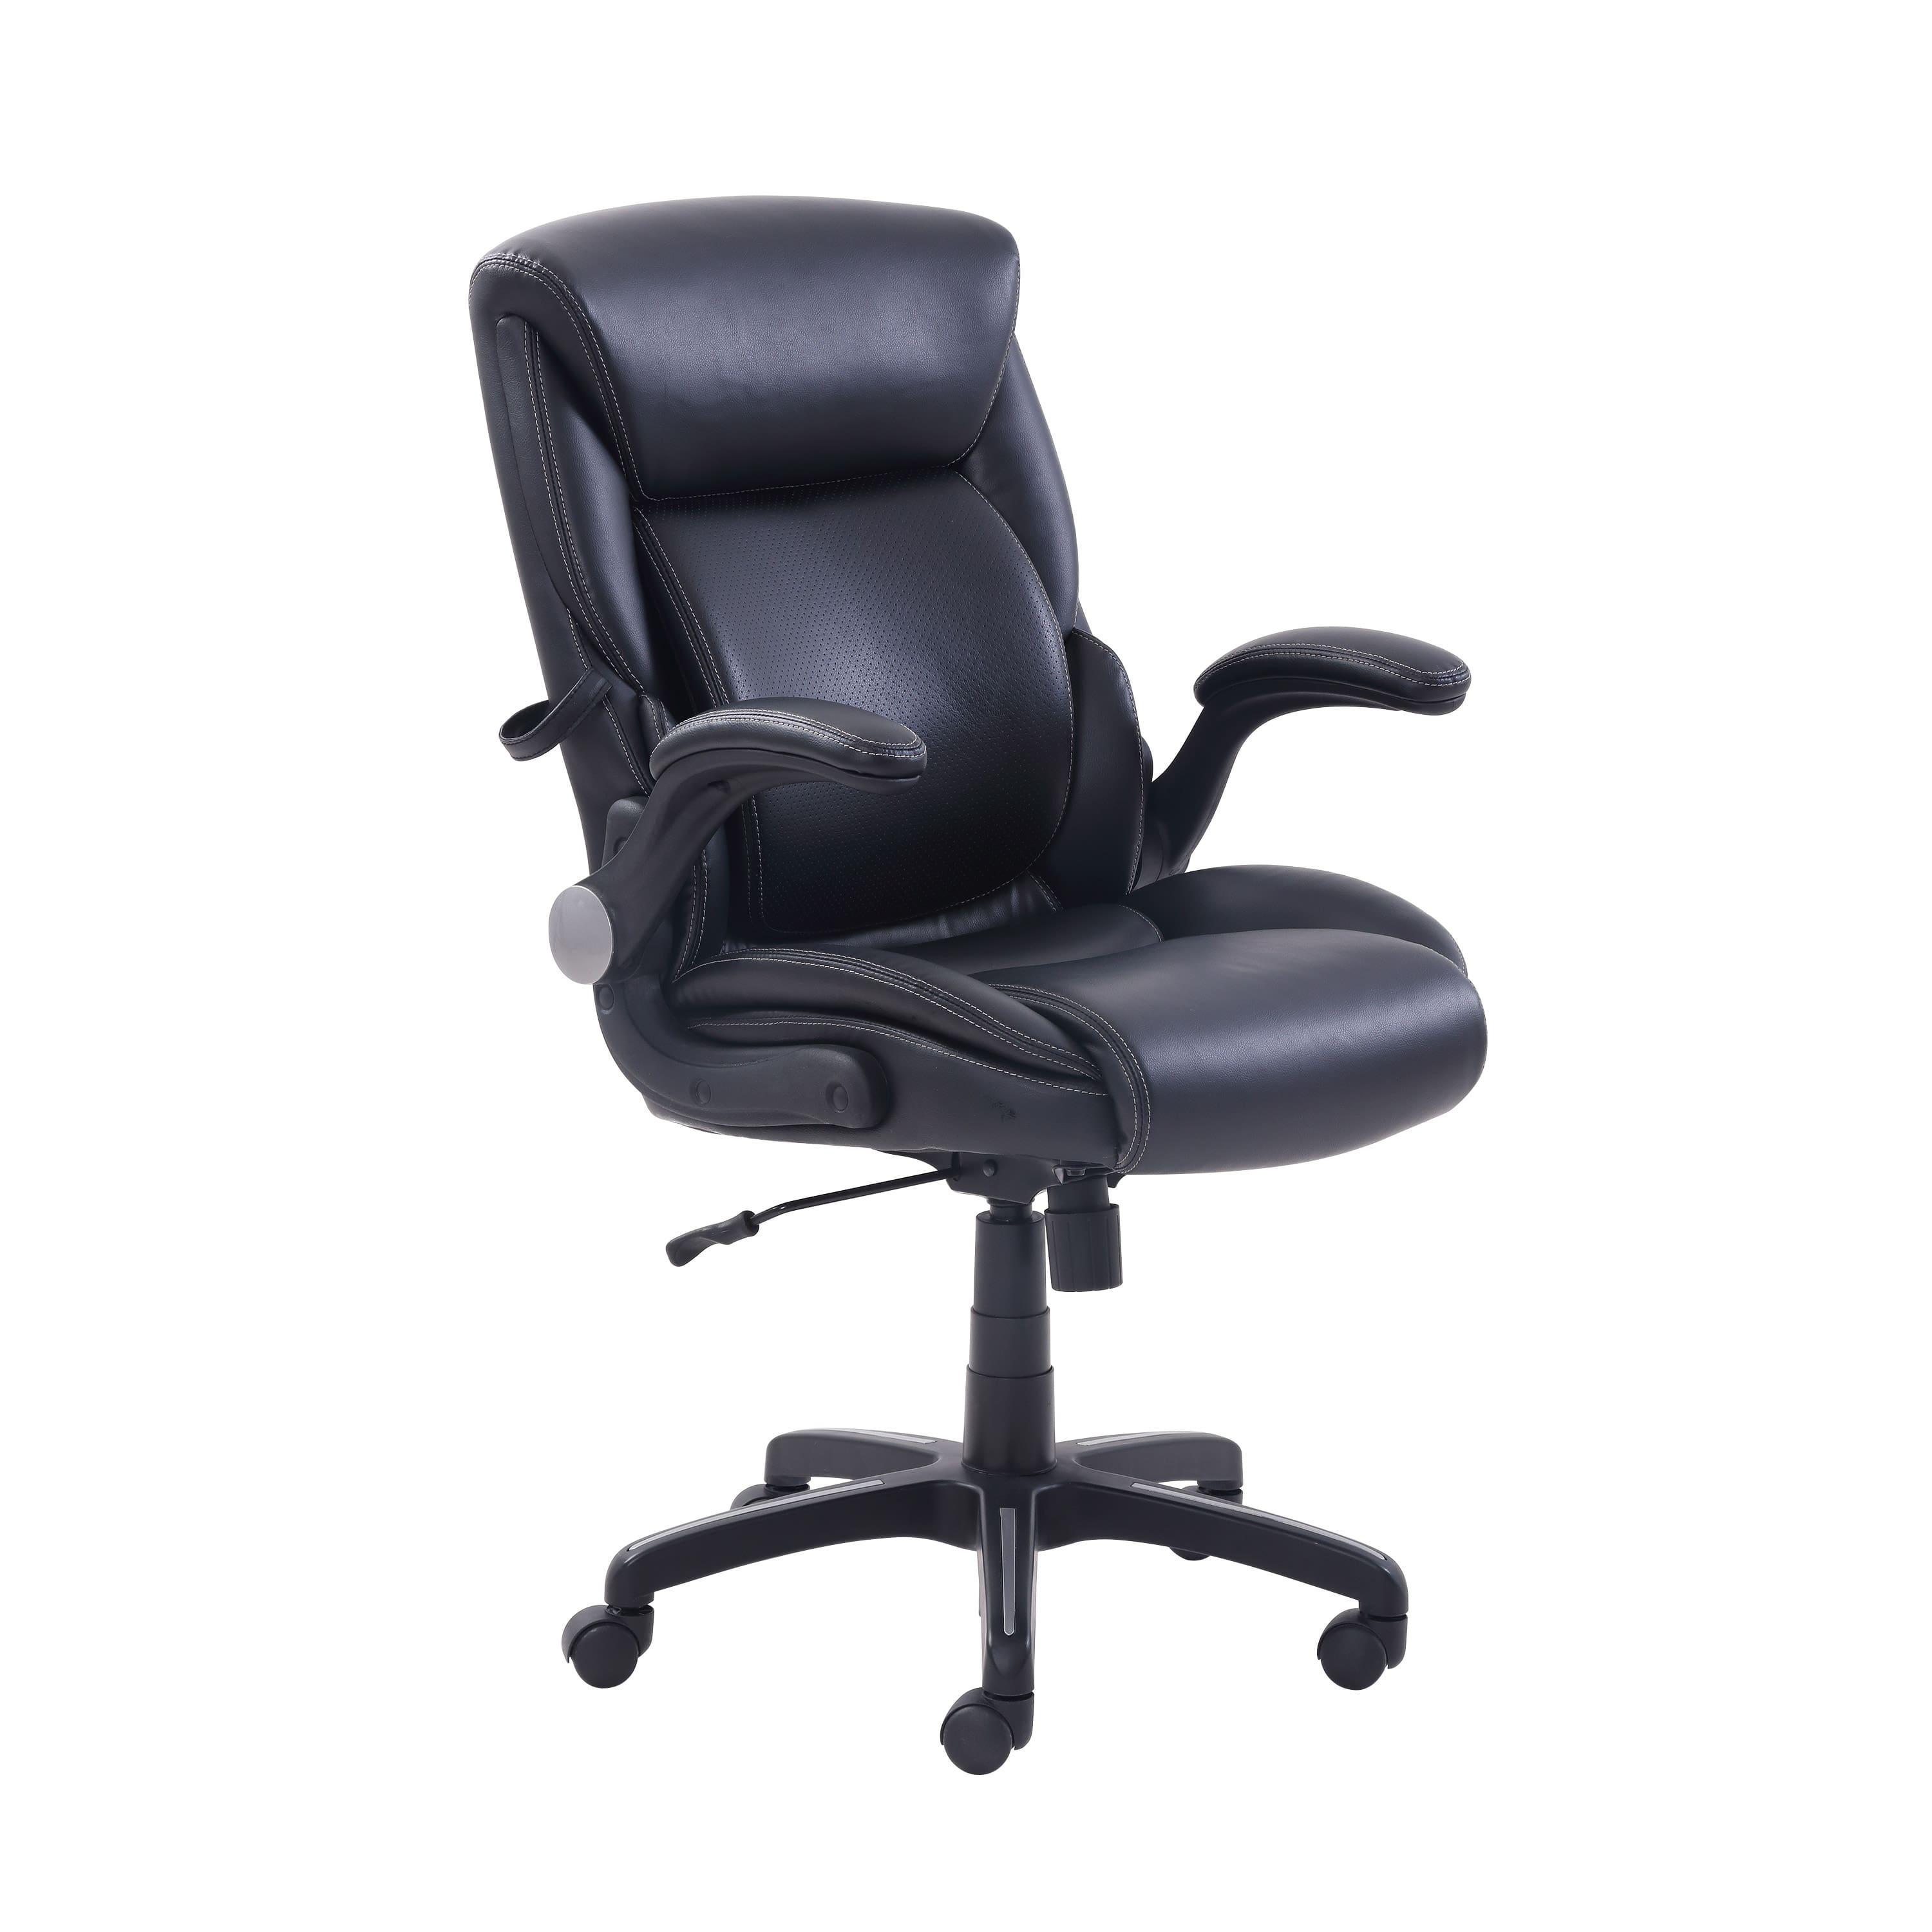 Serta AIR Lumbar Bonded Leather Manager's Office Chair (Gray) $72 + Free  Shipping